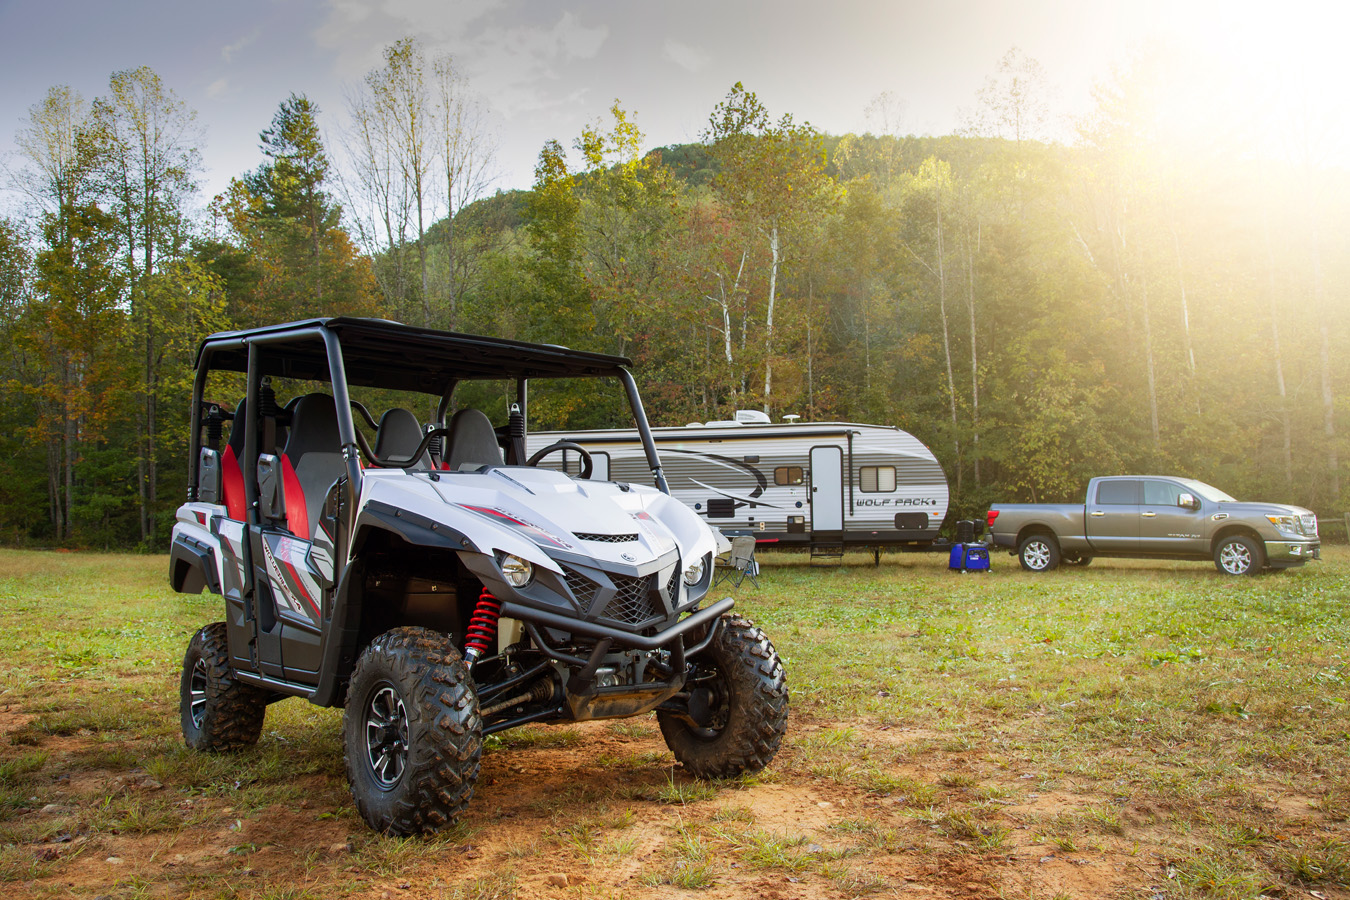 2018 yamaha wolverine x4 test review with video for Yamaha wolverine x4